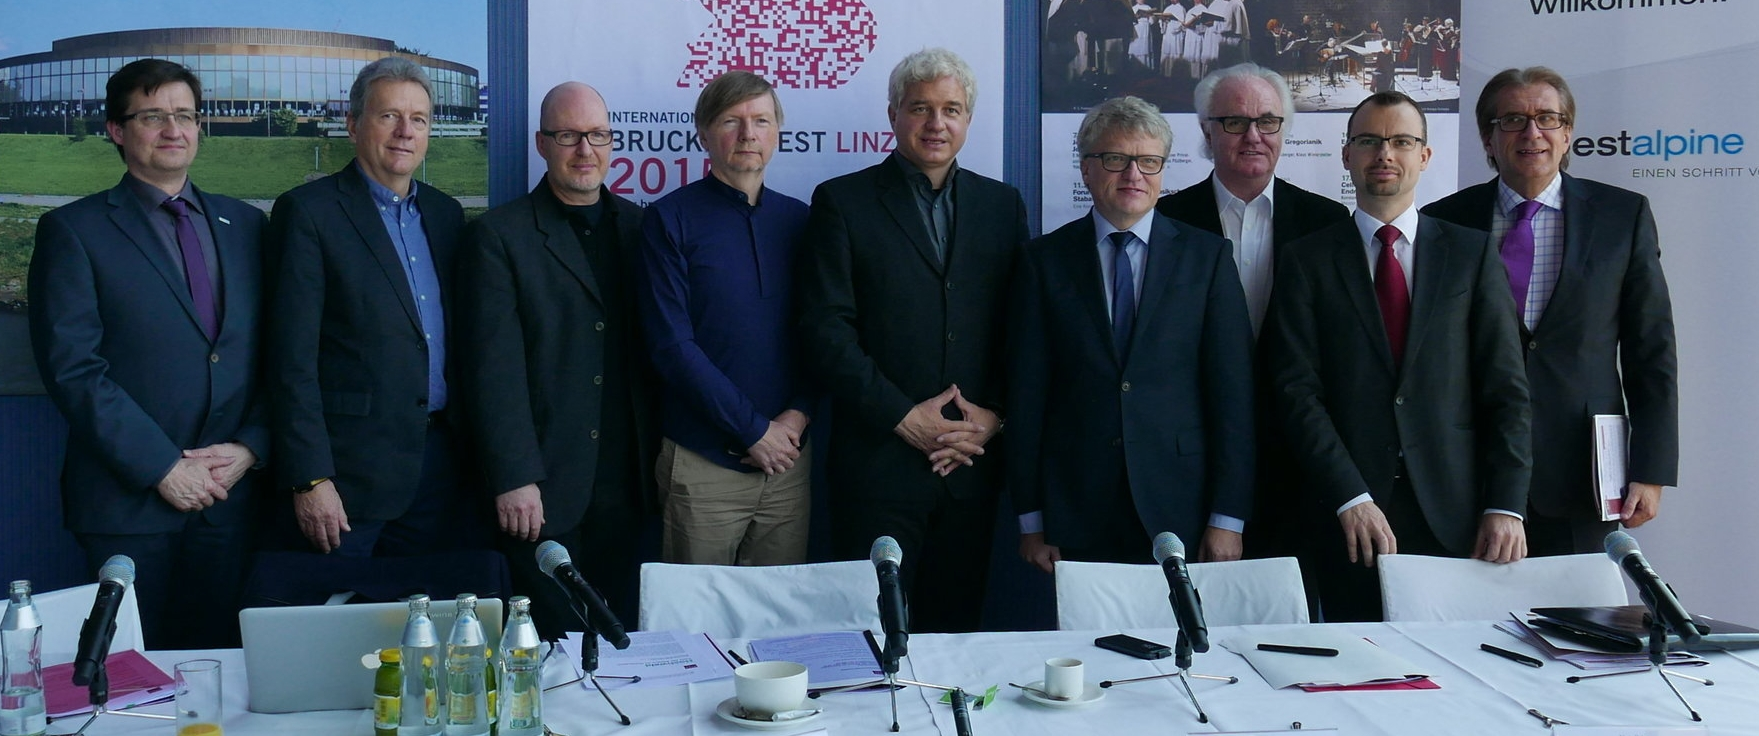 Press conference for Hochwald. Peter Valentin (3. from left) next to Hubert, Hansjoachim Frey and the major of Linz Klaus Luger.